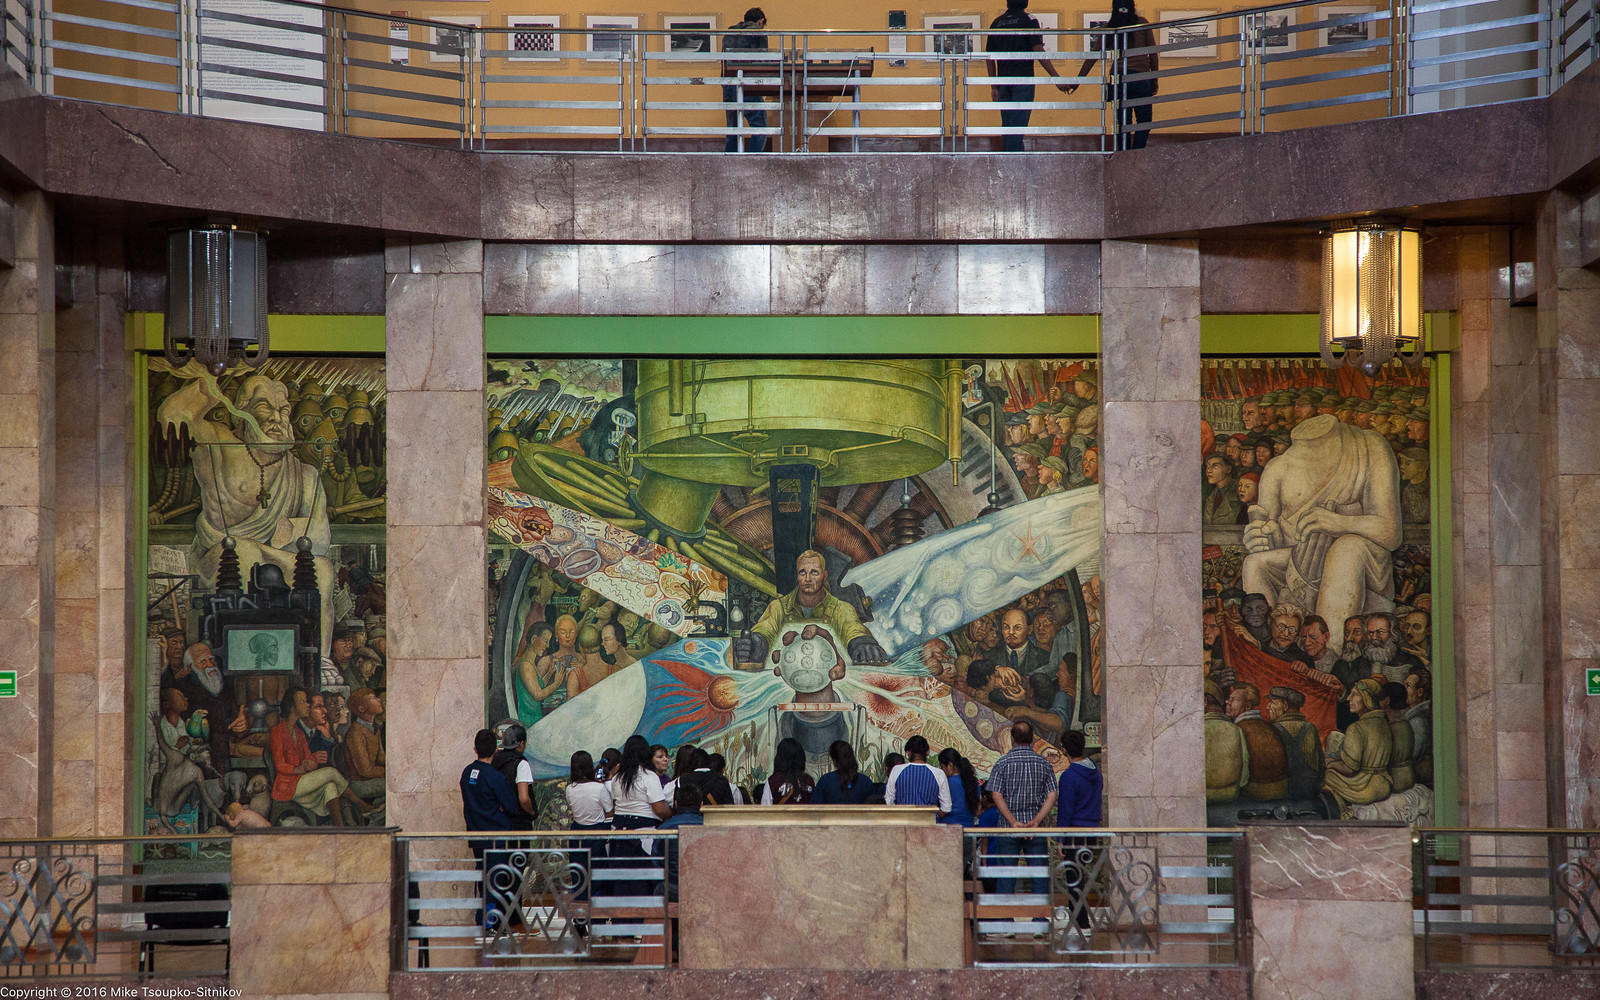 Diego rivera in mexico city demerjee travels more for Diego rivera lenin mural